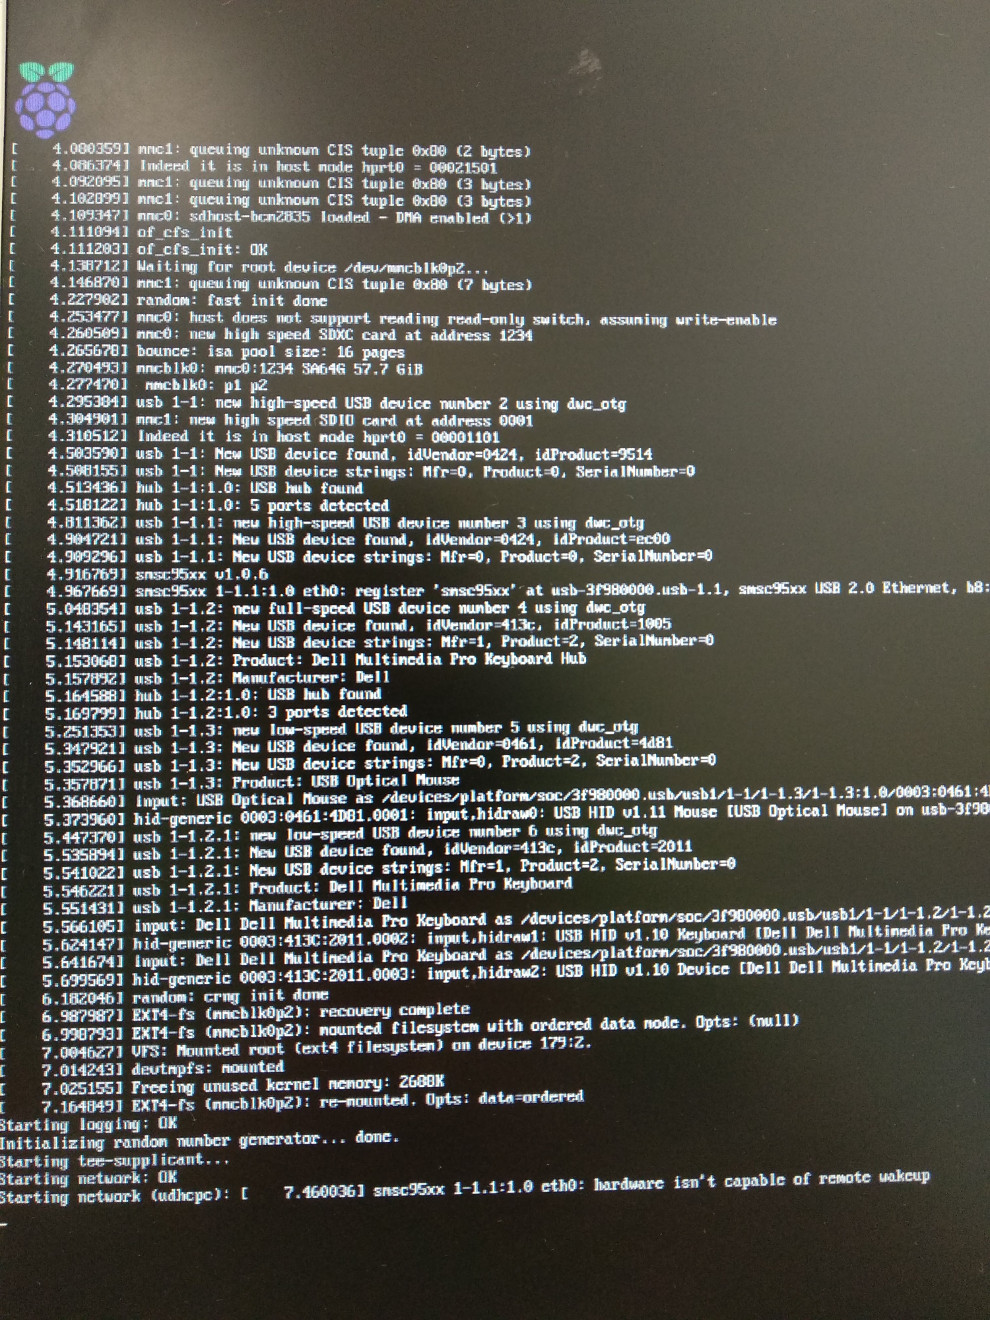 Linux kernel hang at crng init done · Issue #306 · OP-TEE/build · GitHub